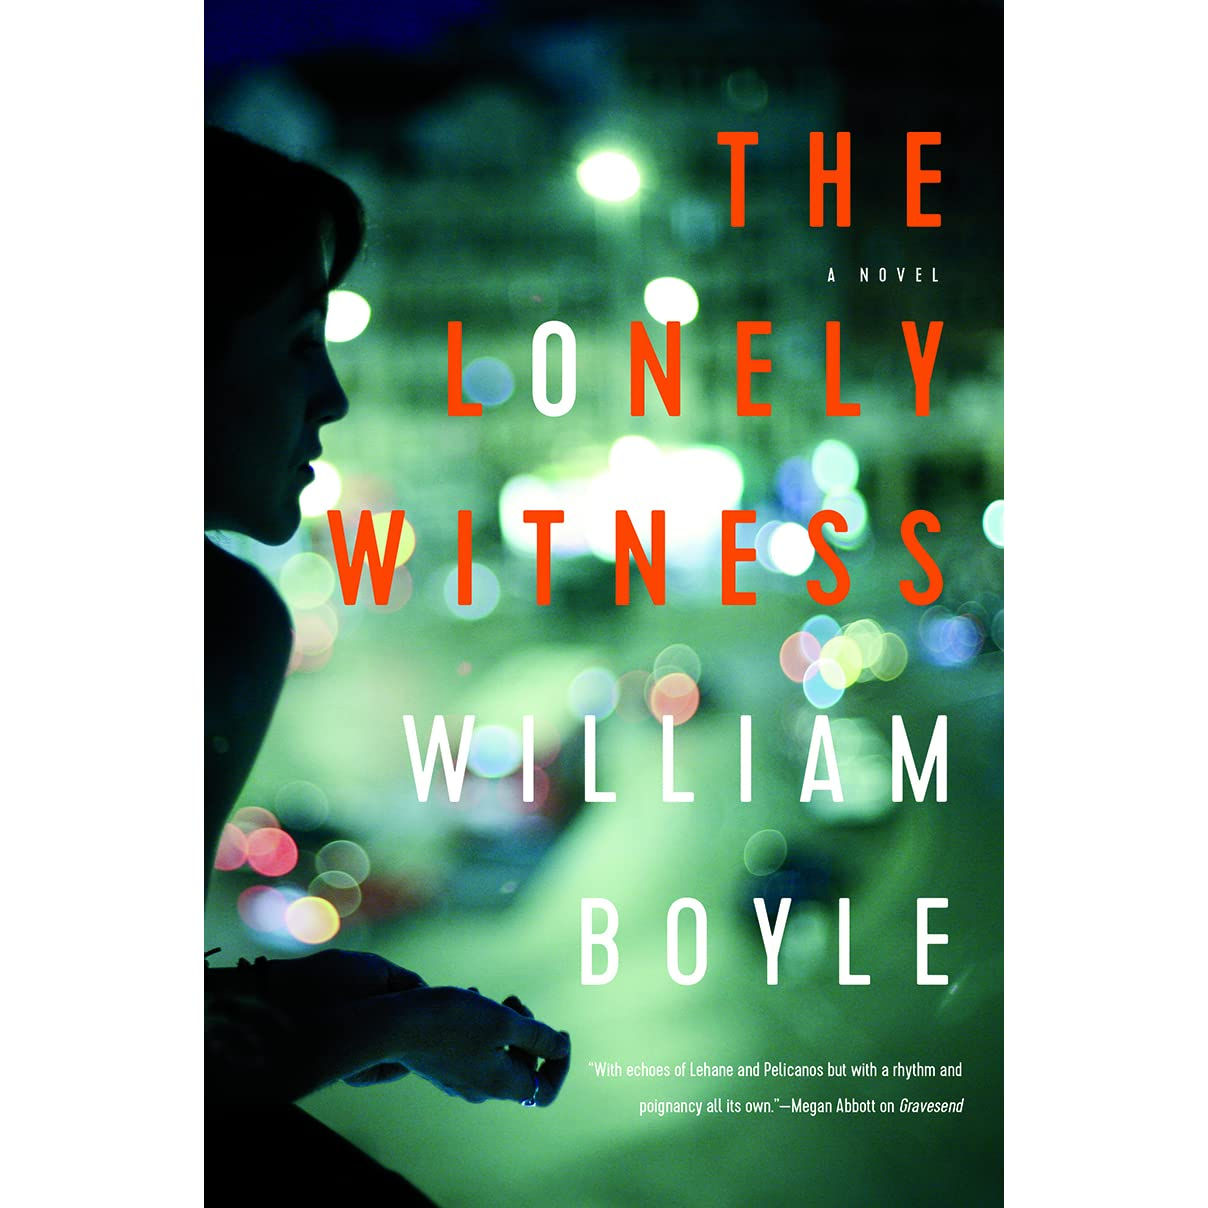 The Lonely Witness by William Boyle